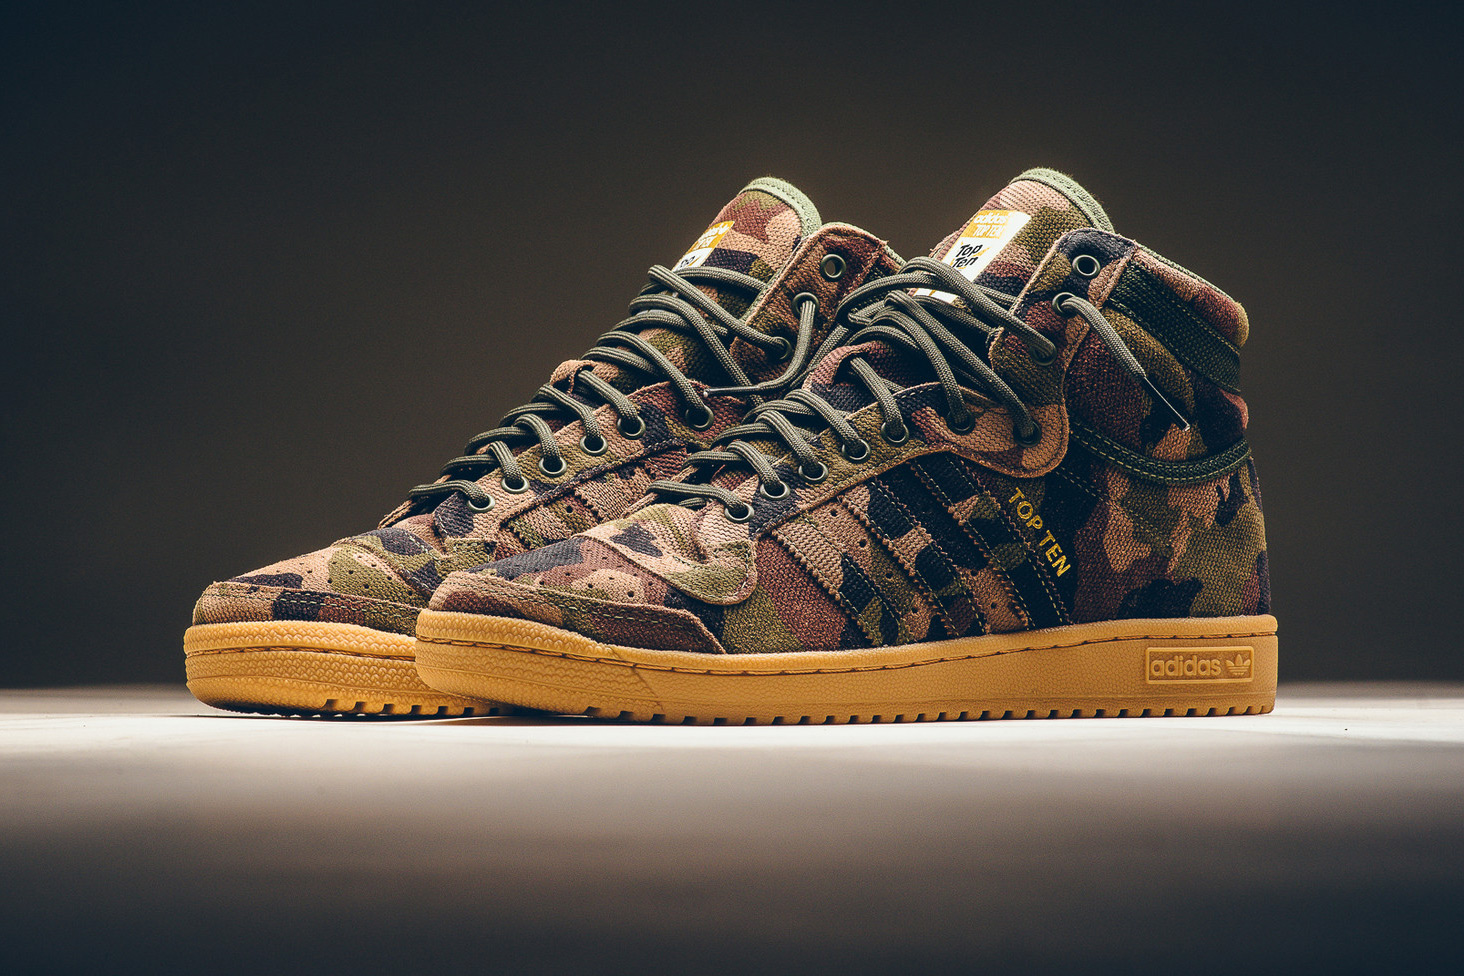 adidas Rolls out a Camouflage Top Ten Hi